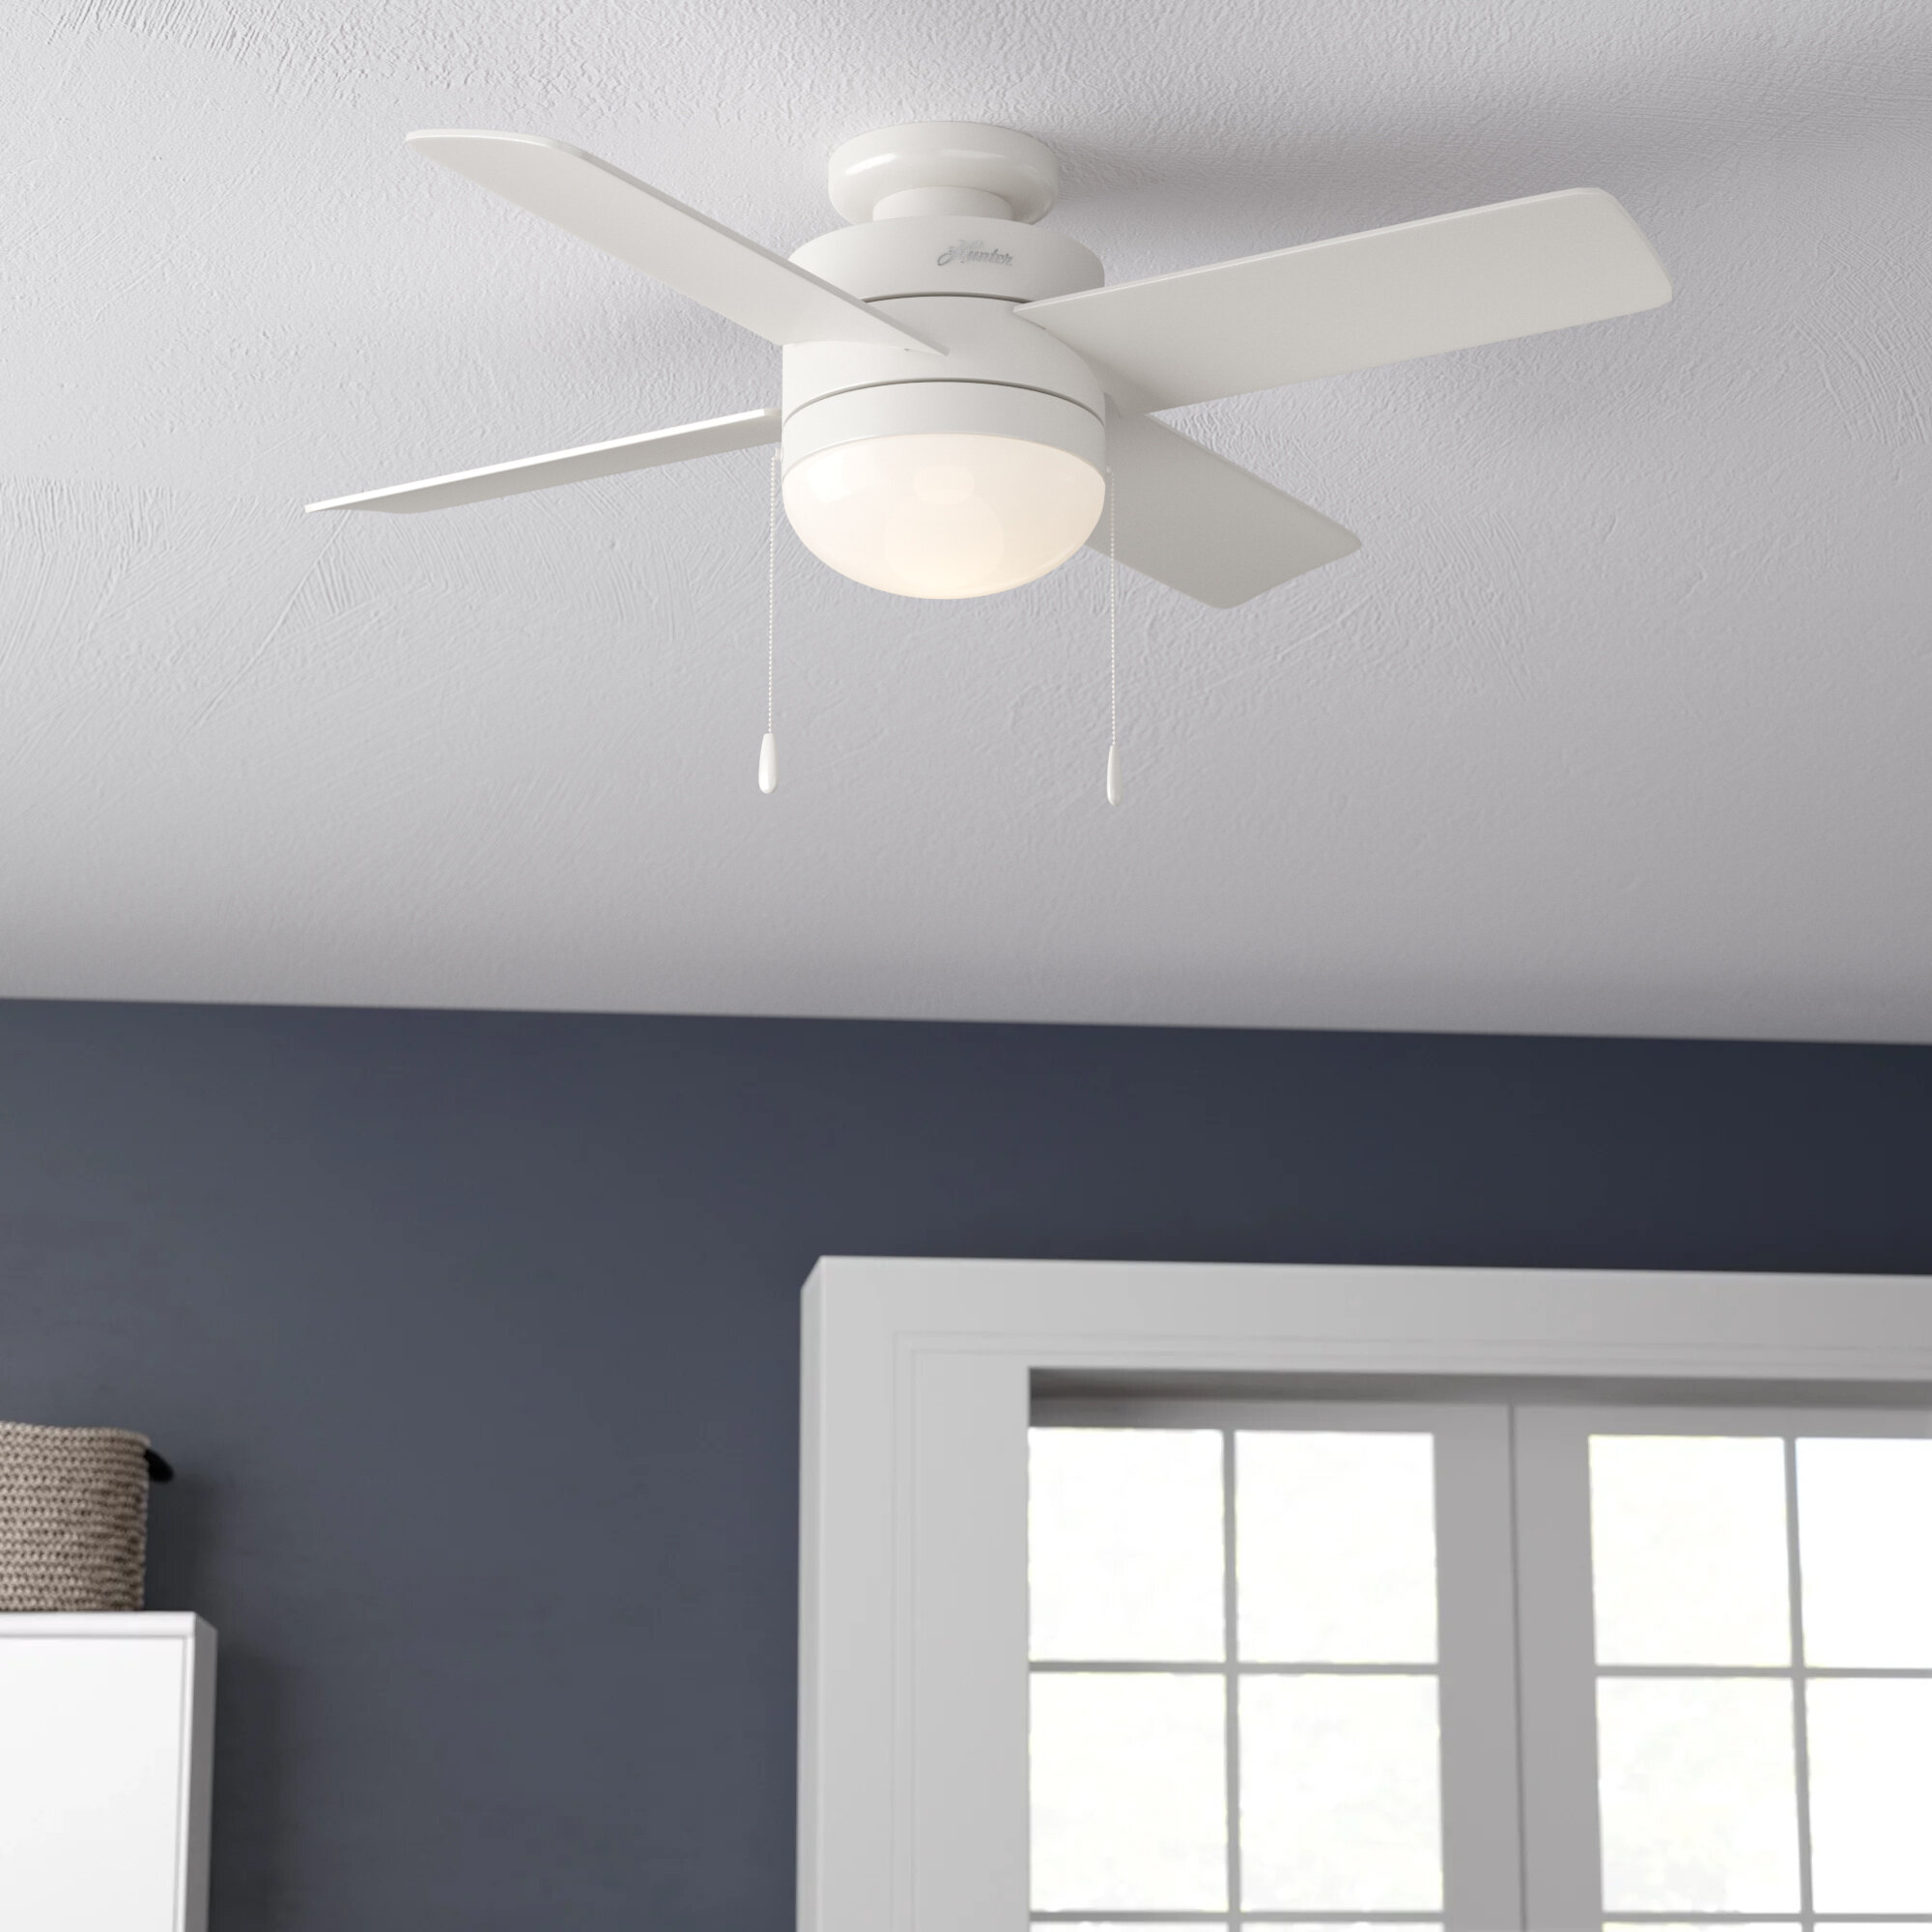 Tc Home 22 Inches Ceiling Fan With Light Led 3 Speeds Invisible Blades Close To Ceiling Bedroom Ceiling Fan Light Kits Tools Home Improvement Fcteutonia05 De